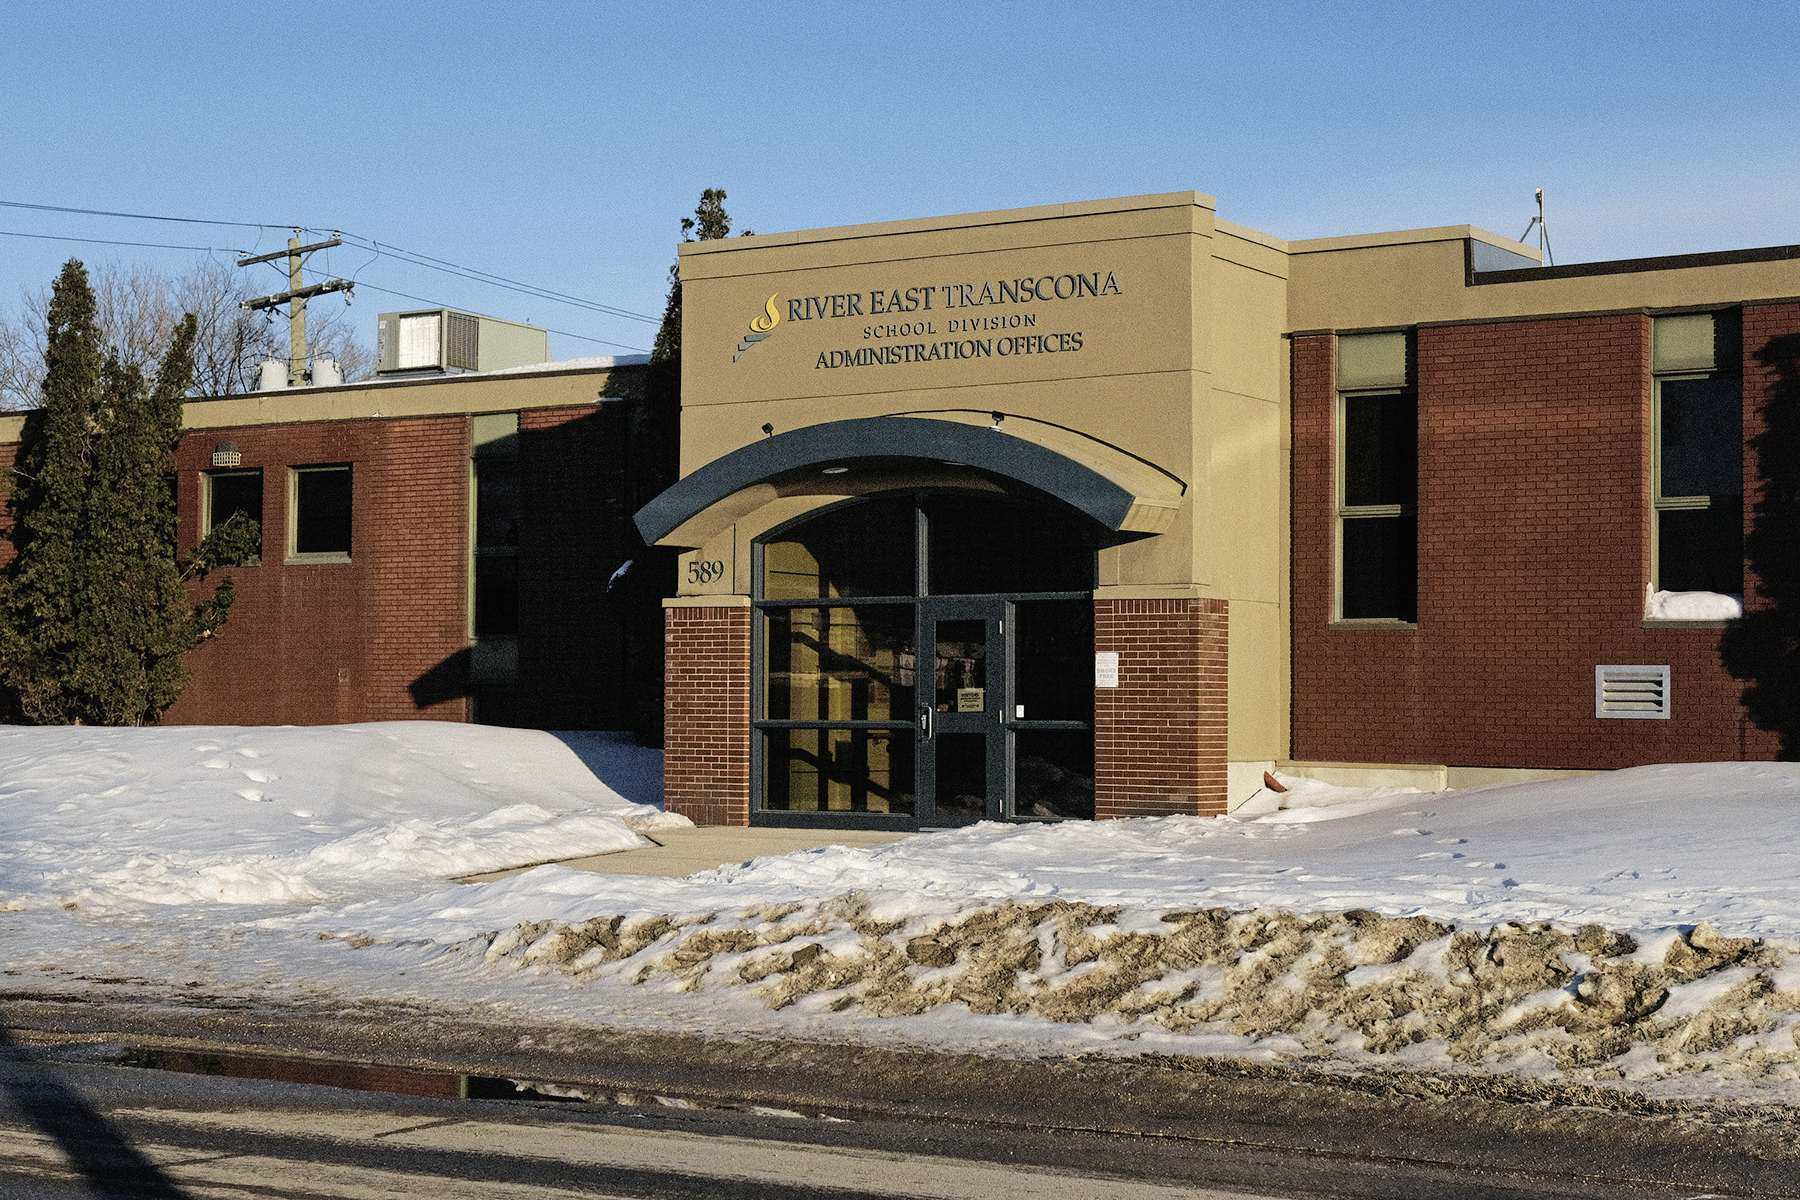 Per capita spending varies broadly within Winnipeg, with River East Transcona students getting nearly $3,000 less than those in St. James Assiniboia. (Daniel Crump / Winnipeg Free Press)